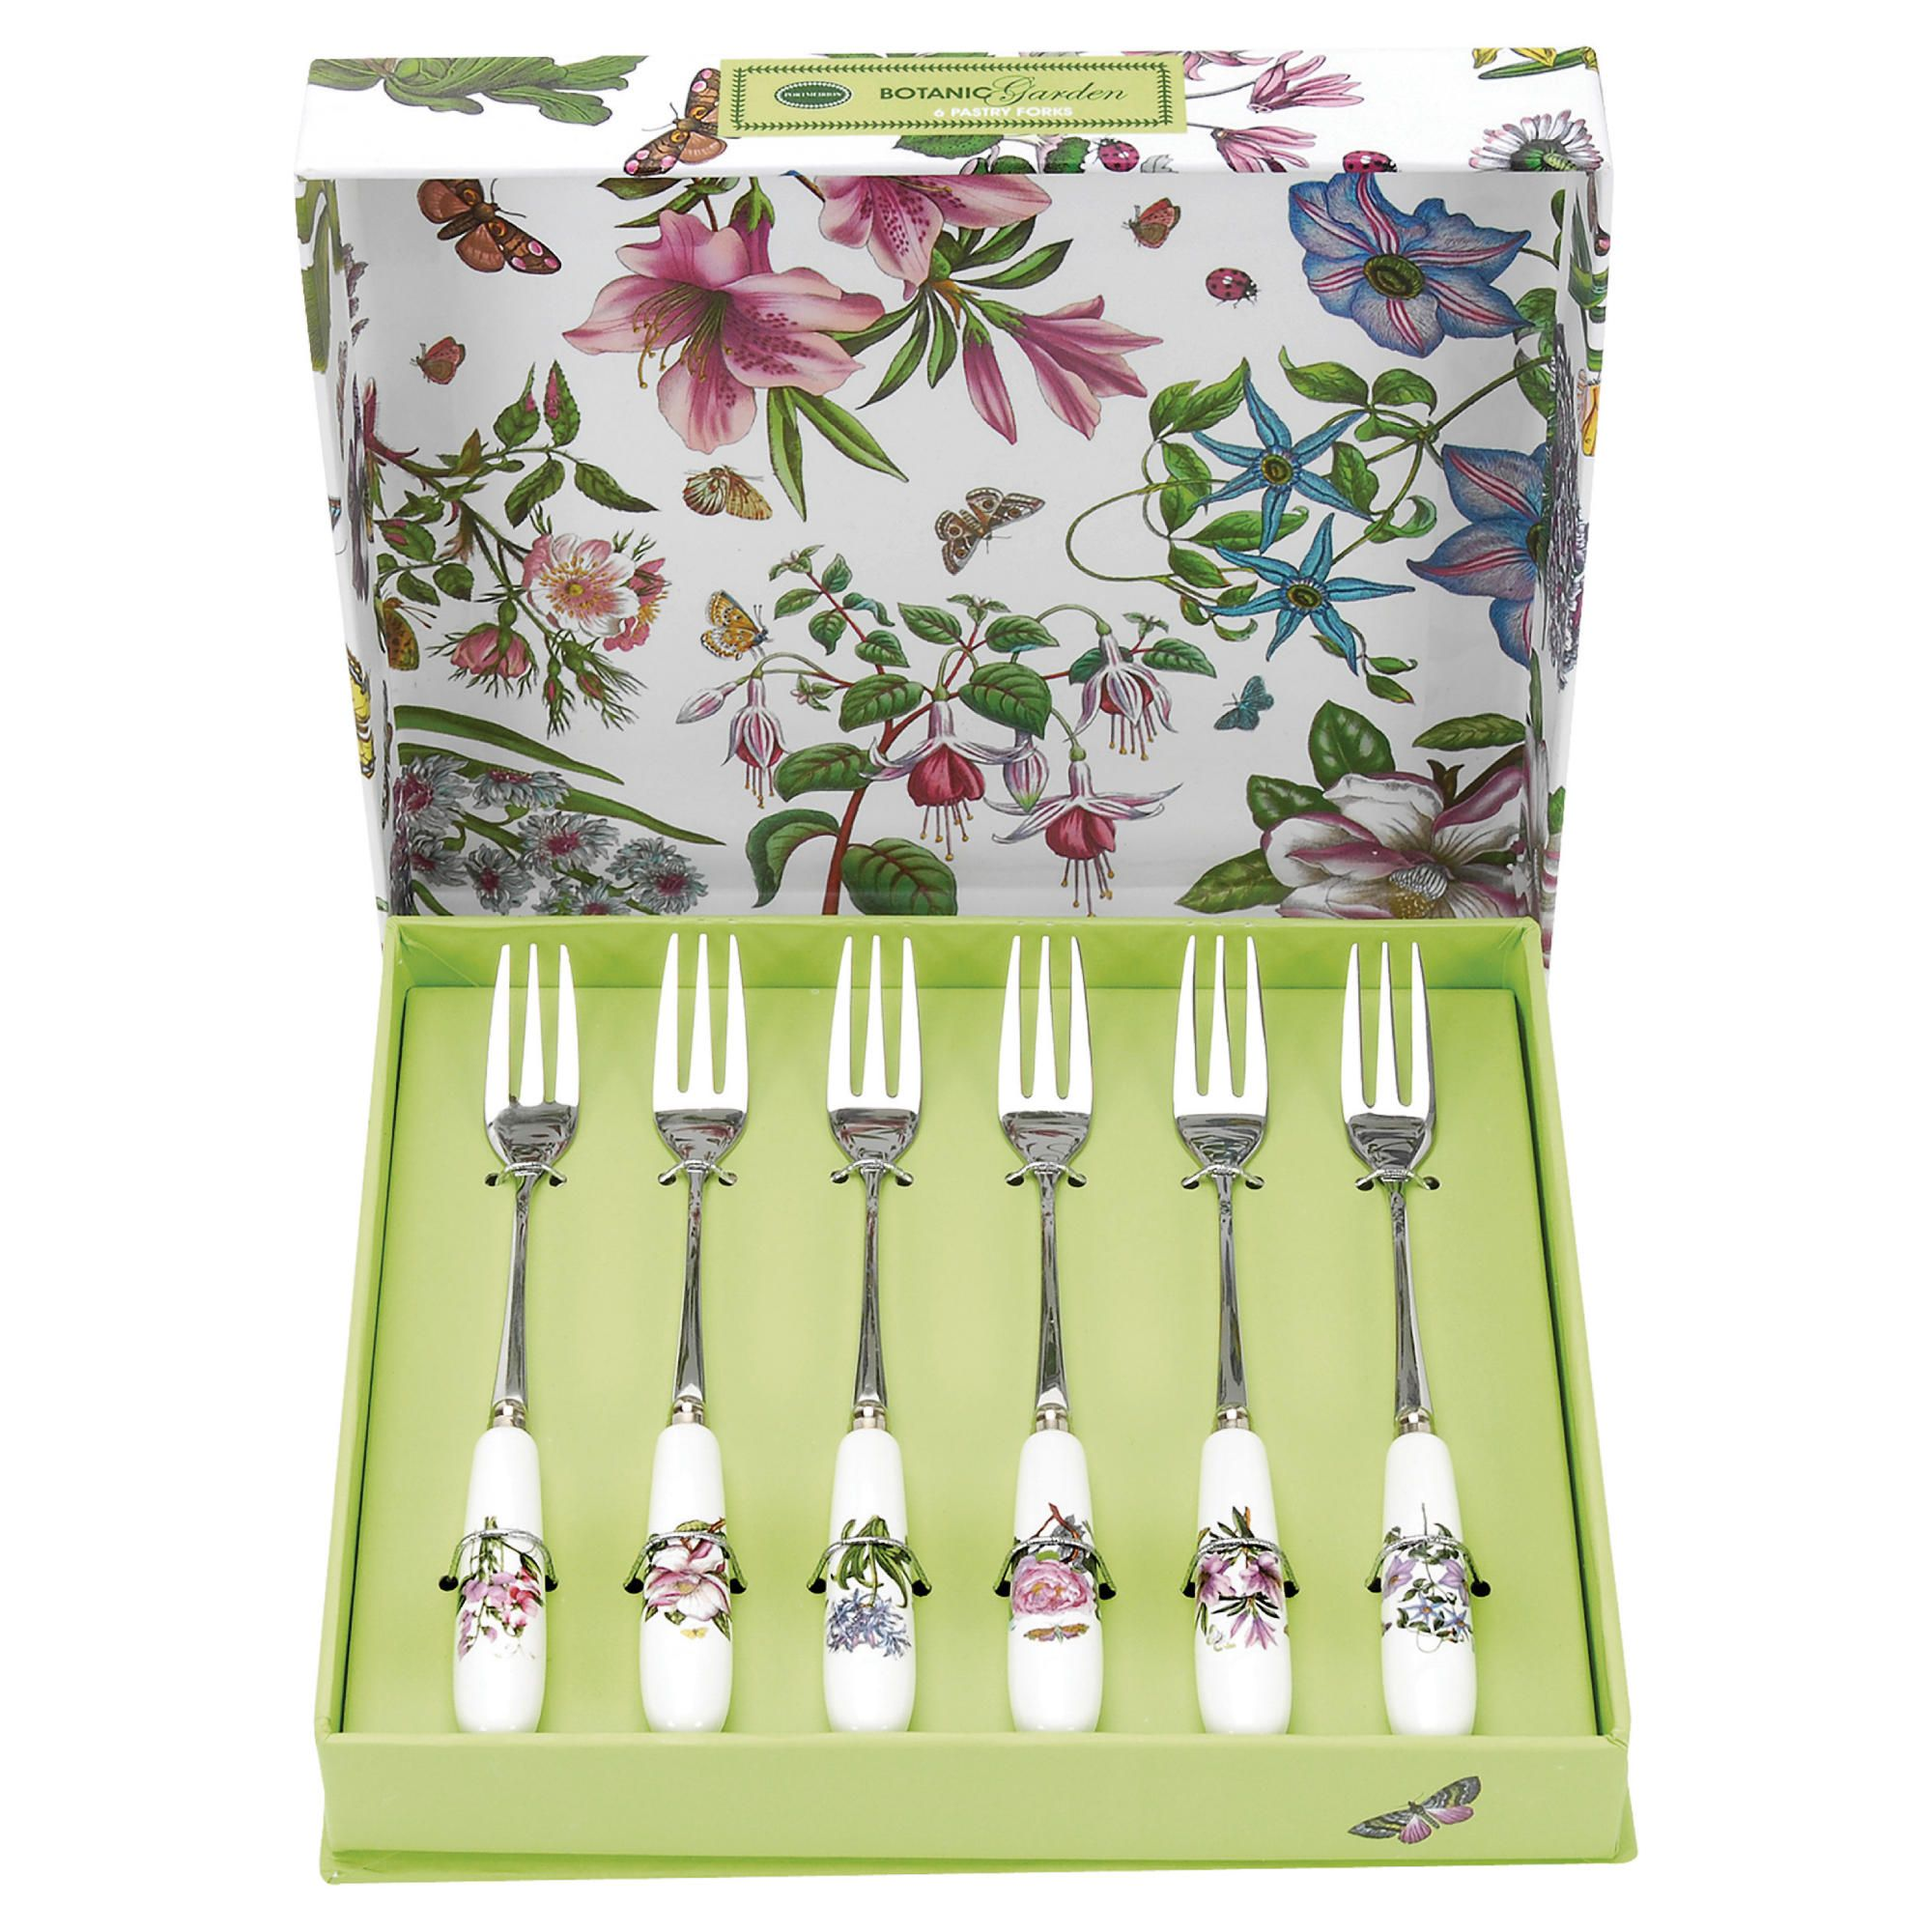 Portmeirion Botanic Garden Set of 6 Pastry Forks